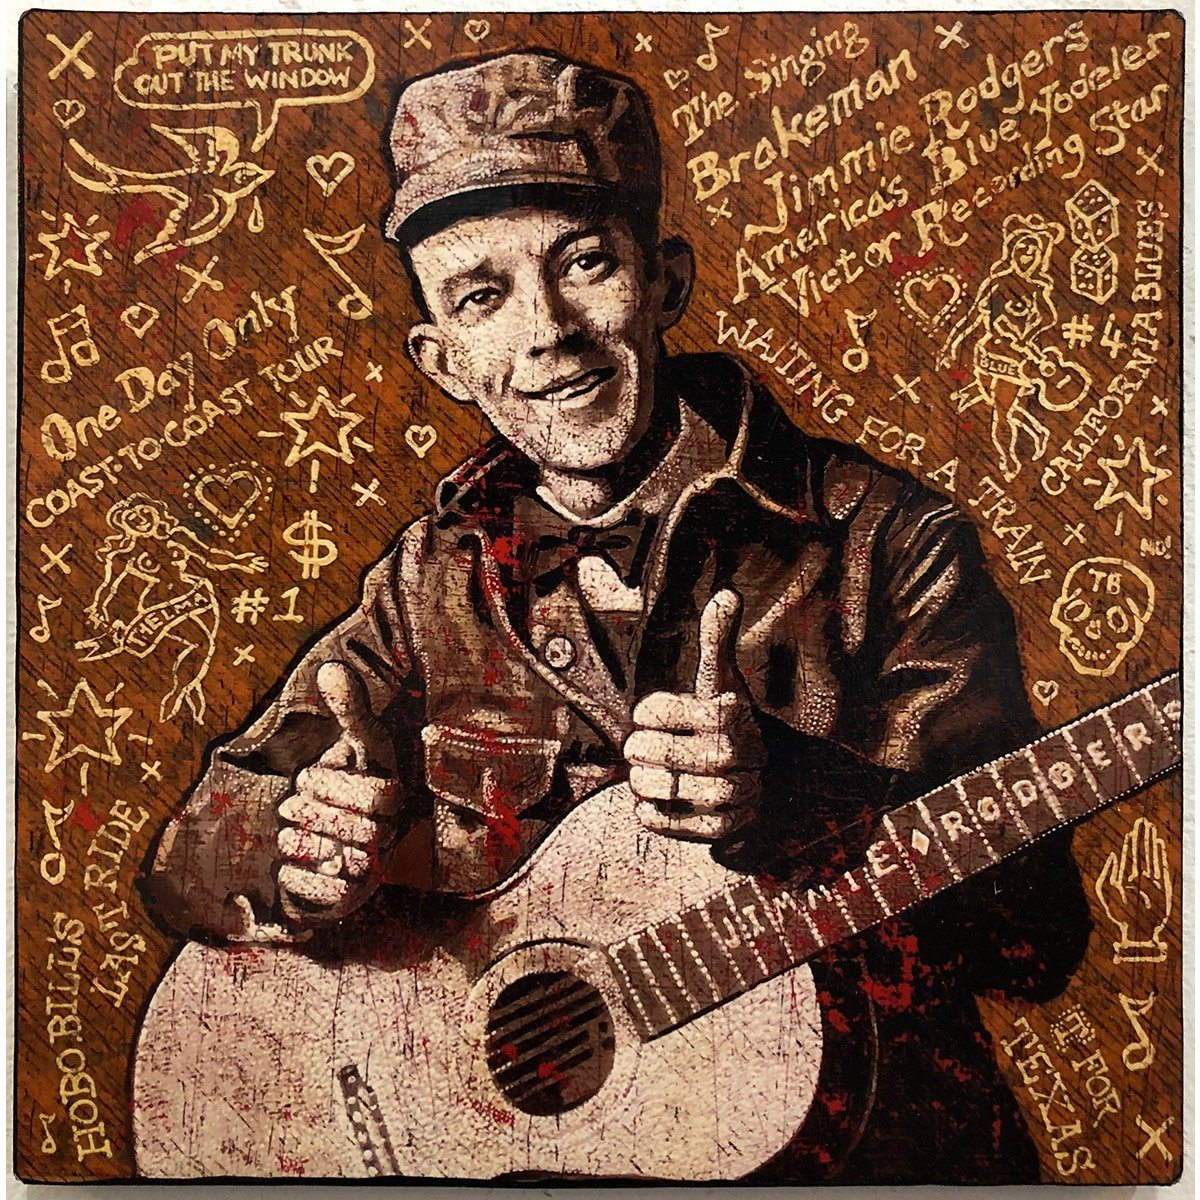 Jimmie Rogers - Jon Langford - Yard Dog Art